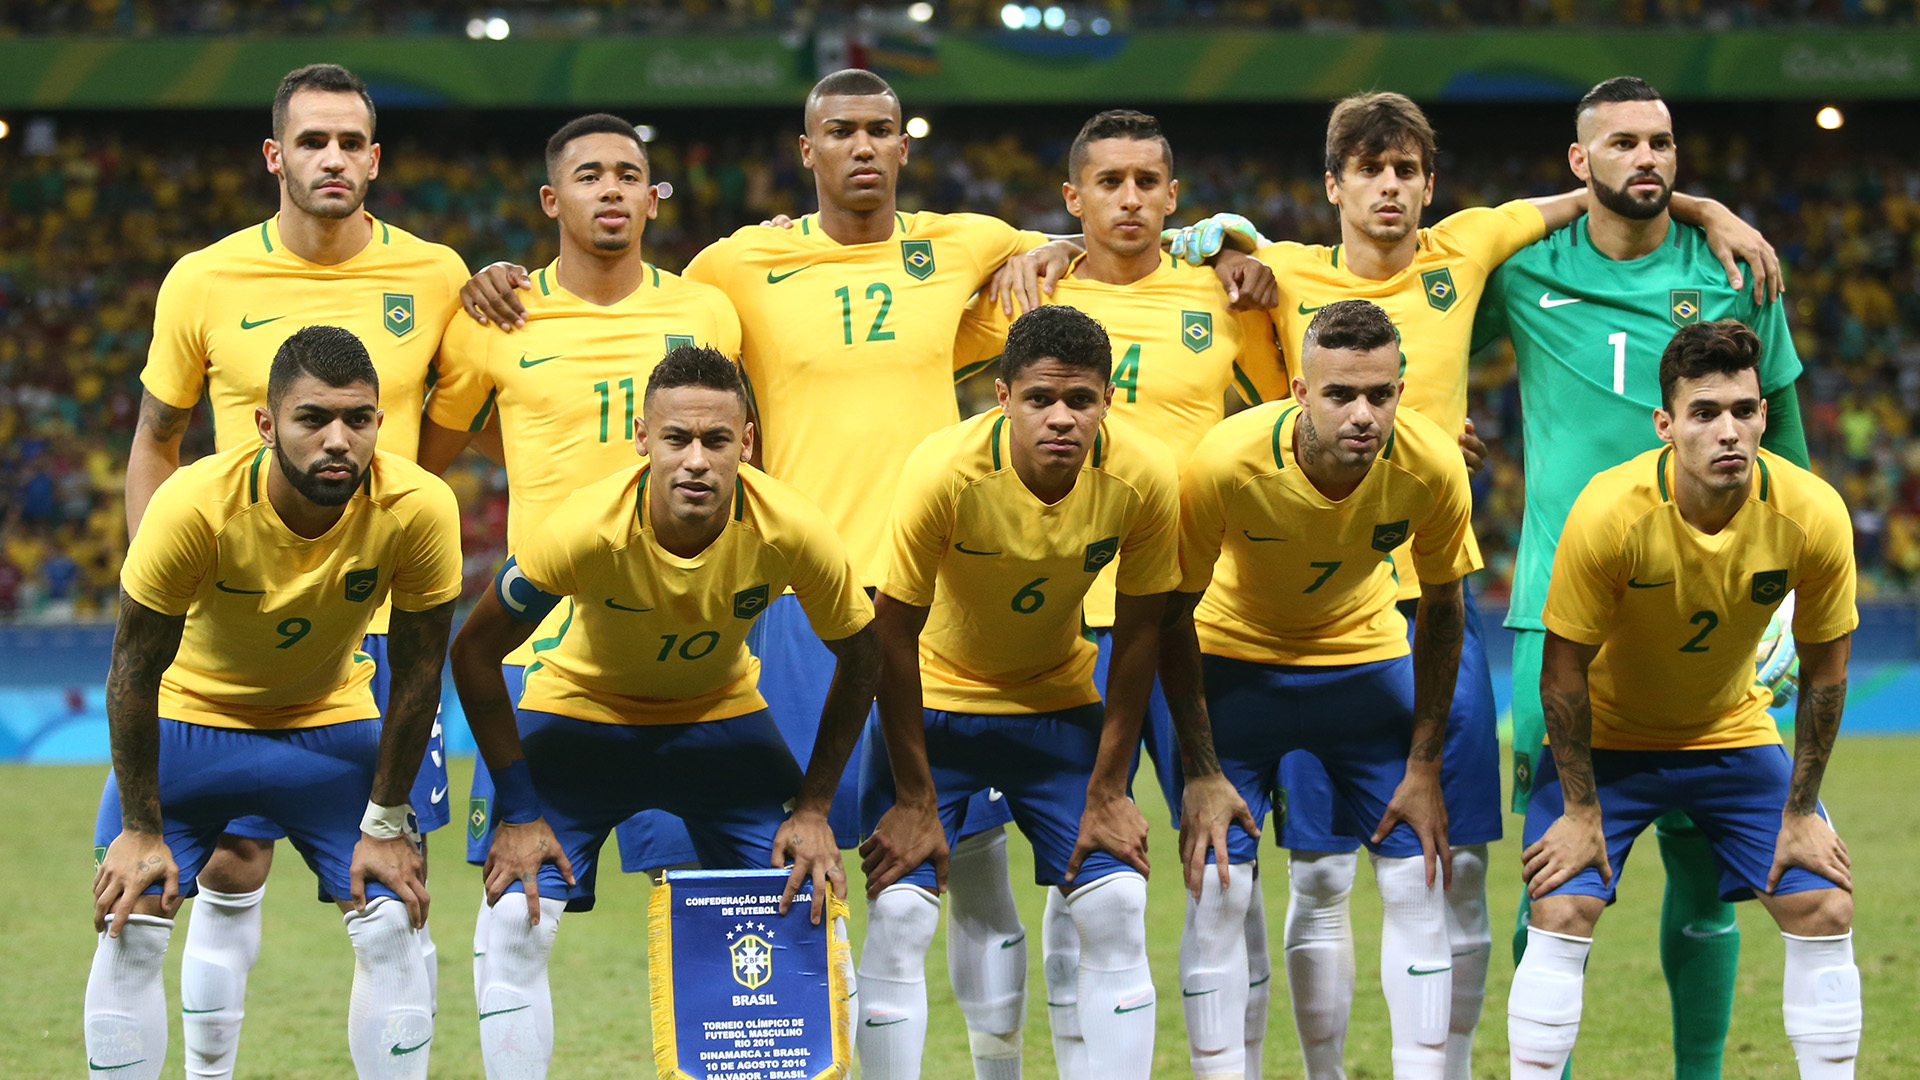 Where is the Brazil 2016 Olympics gold medal winning team now?